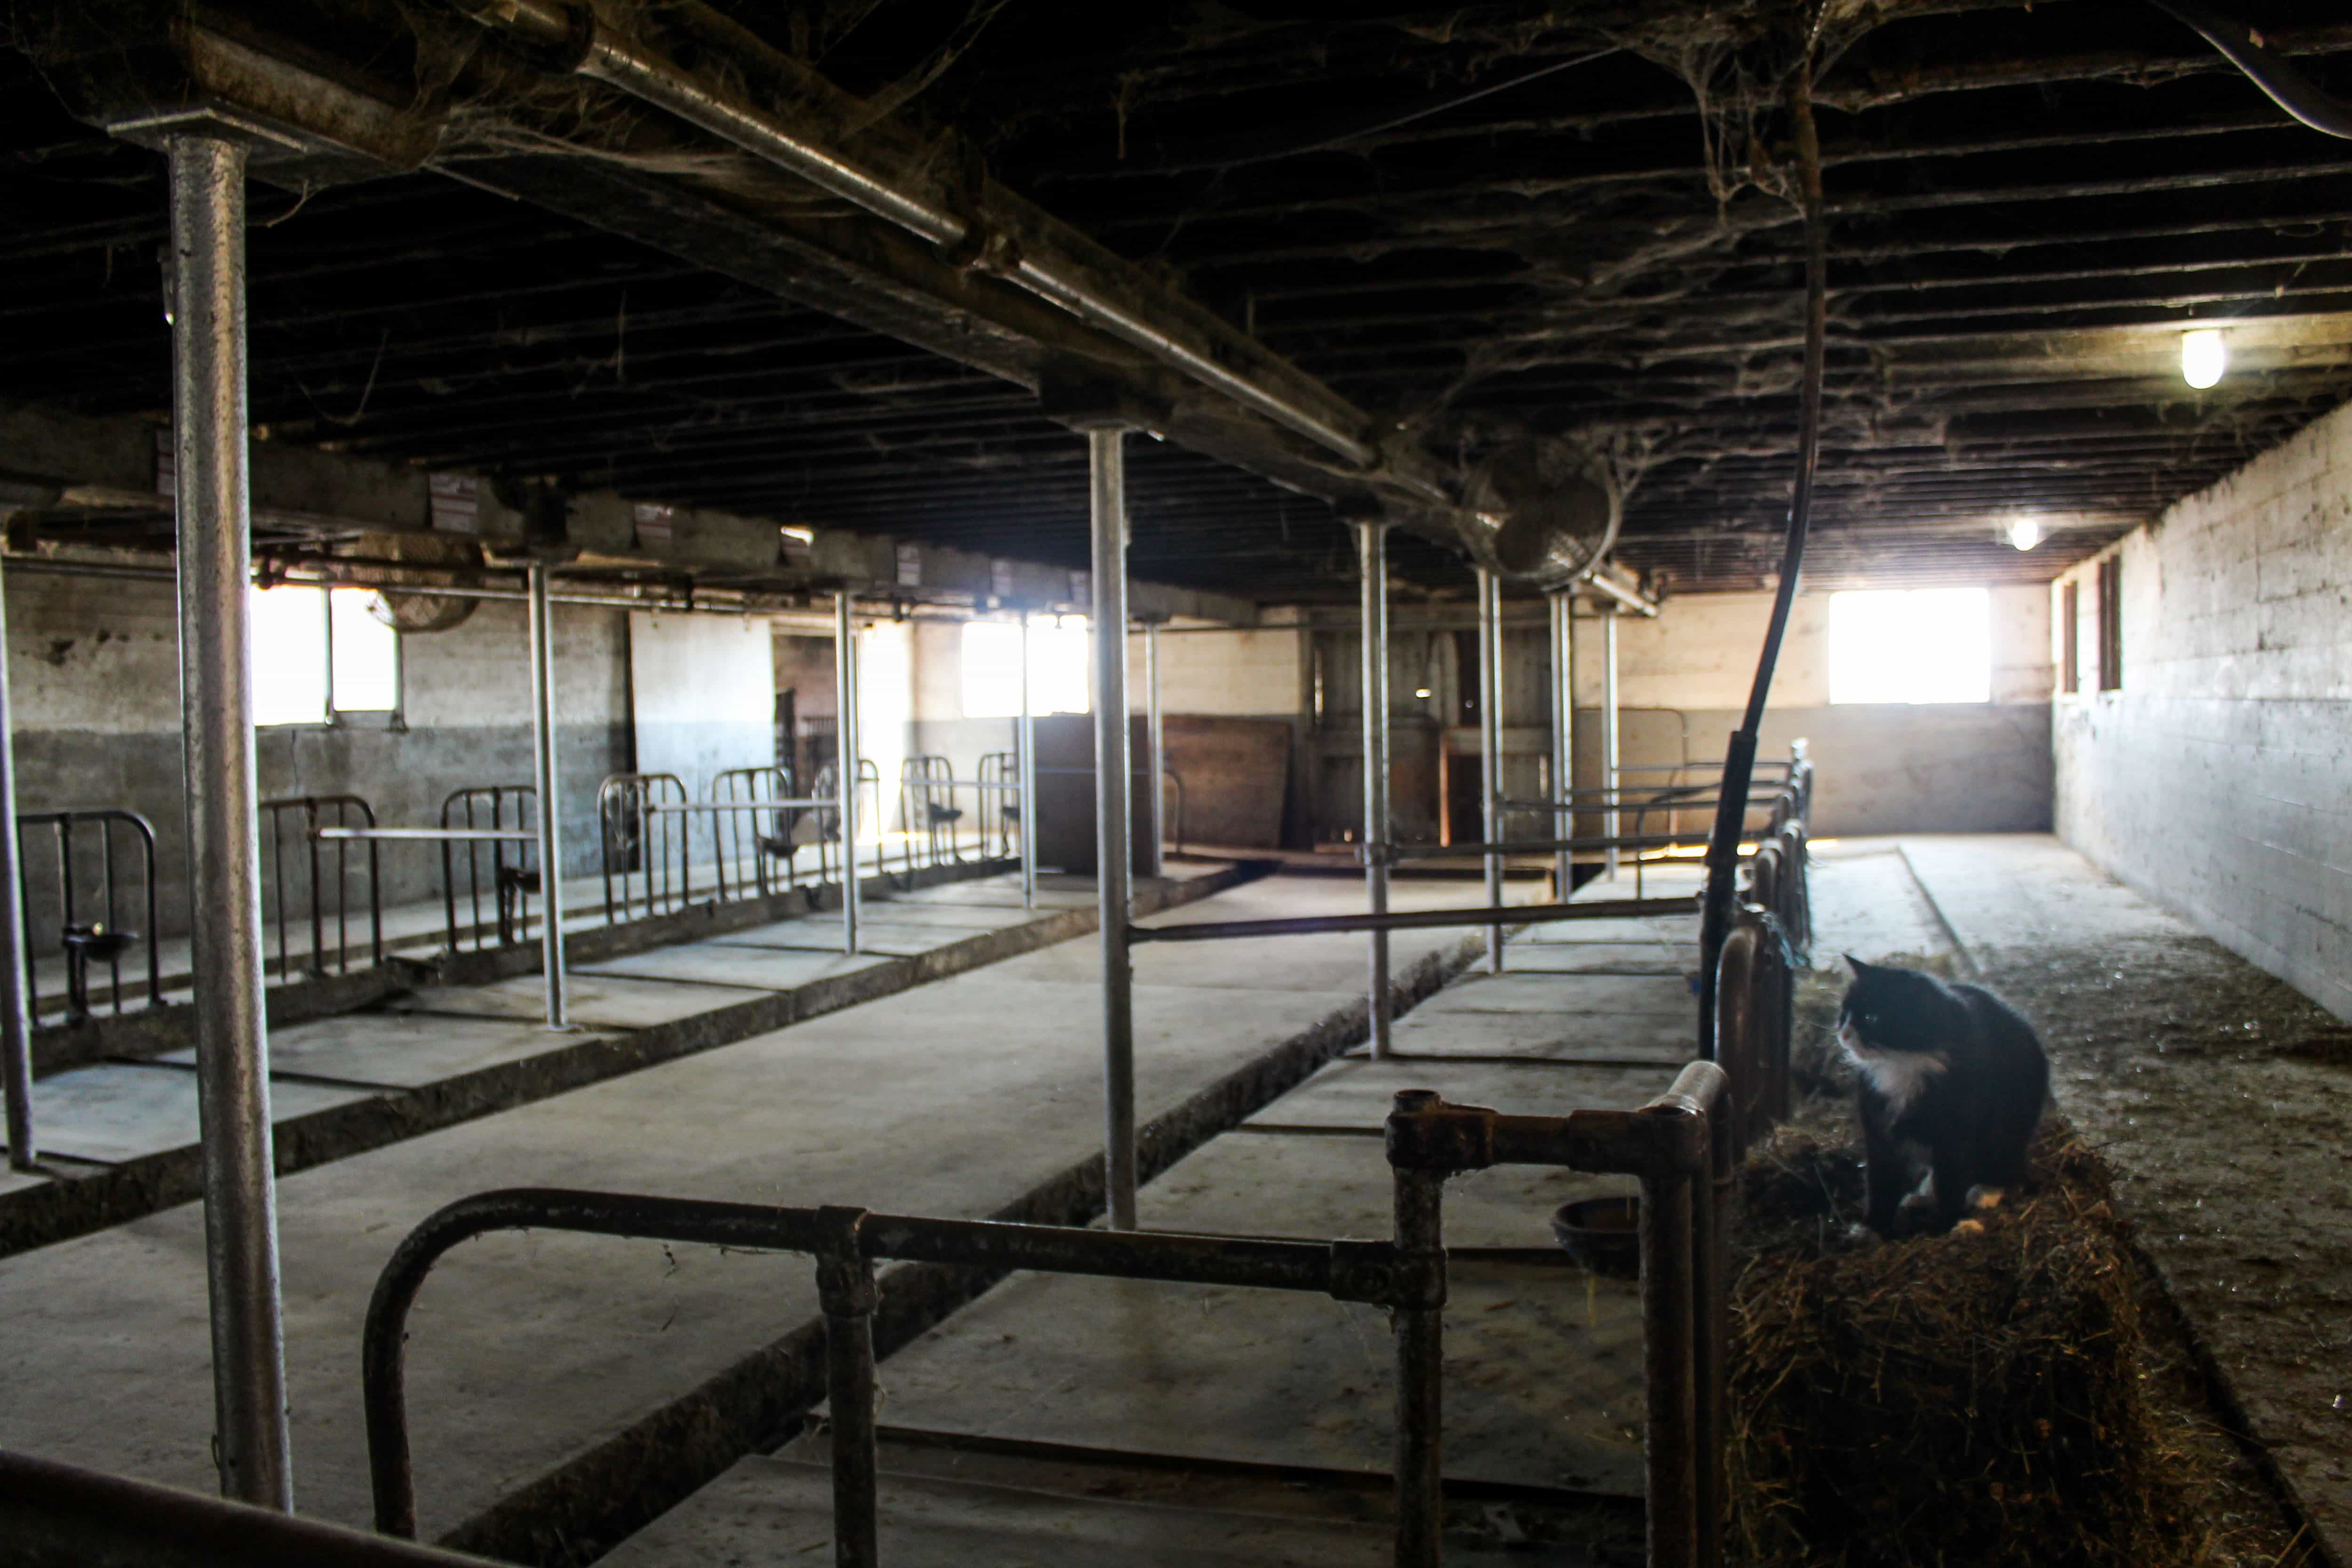 For nearly a century, the Gill family produced milk and dairy at Rose Ridge Dairy Farm near Niagara Falls, Ontario. In 2018, the family sold their herd of 40 lactating cows and transitioned to raising cows for meat production leaving empty milking stalls such as these.